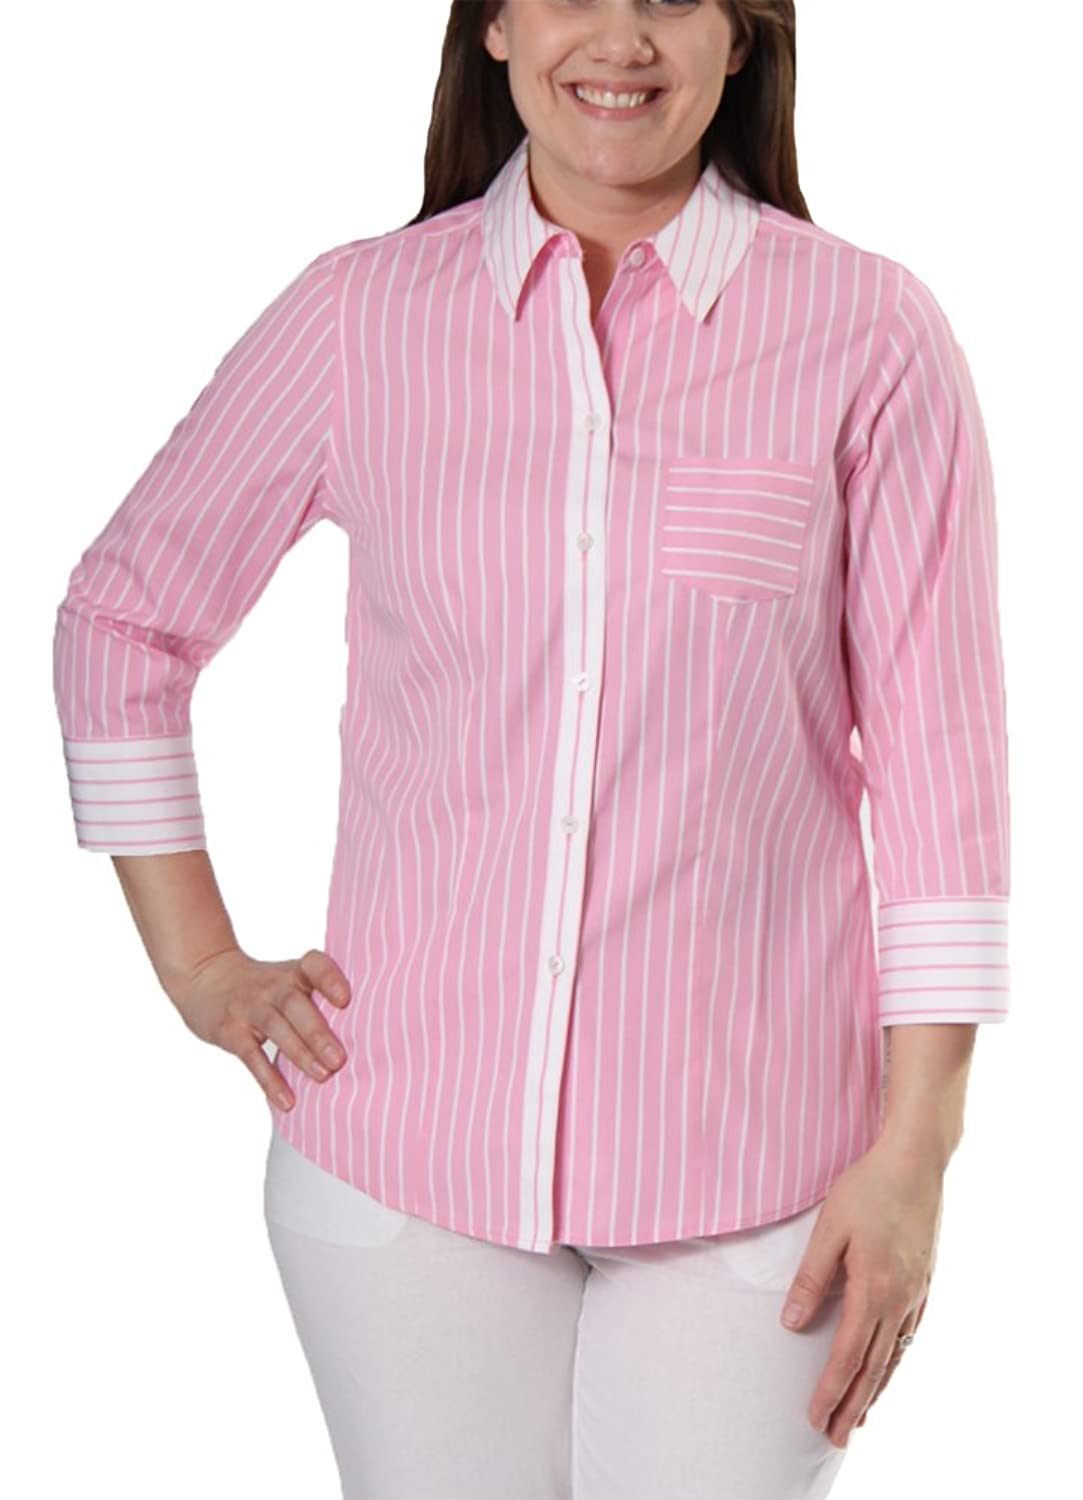 3/4 Sleeve Fitted Rorder Stripe Top in Pink By Foxcroft